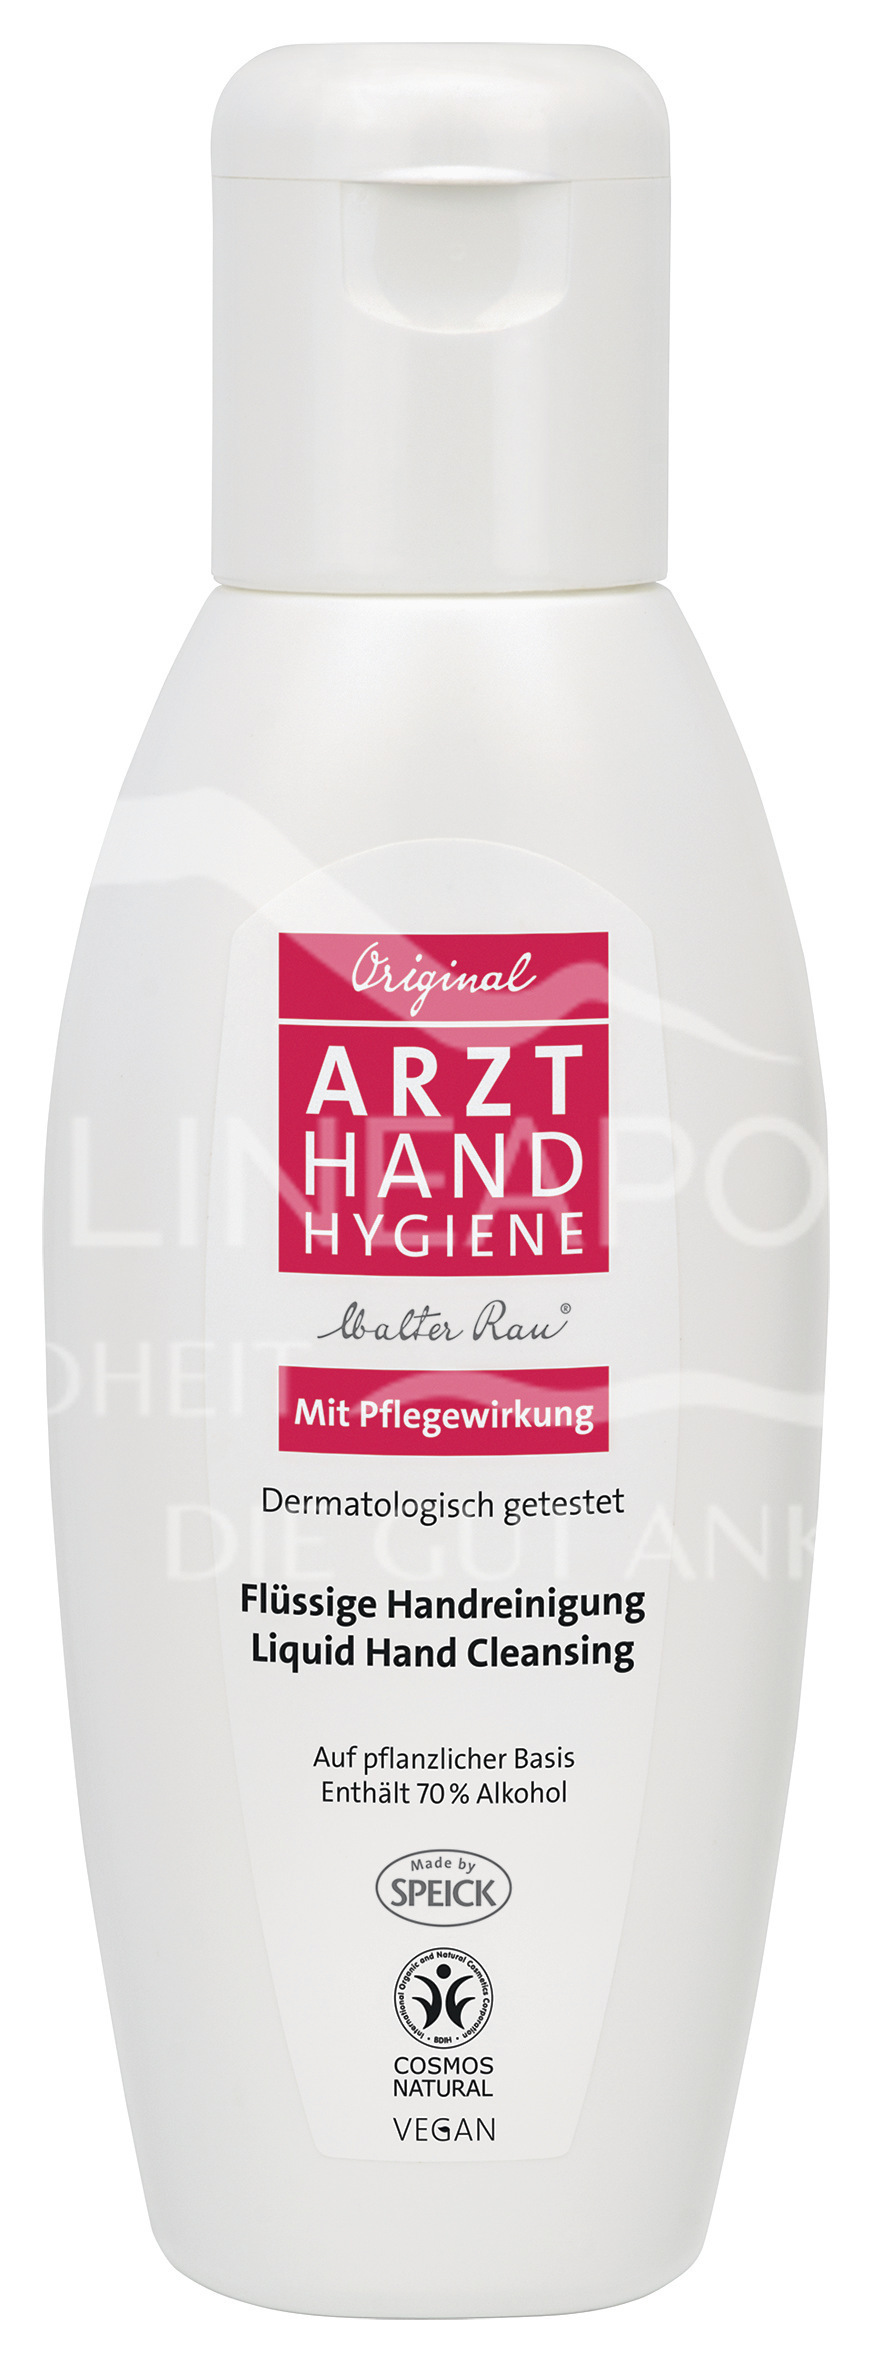 Made by Speick Arzt Handhygiene